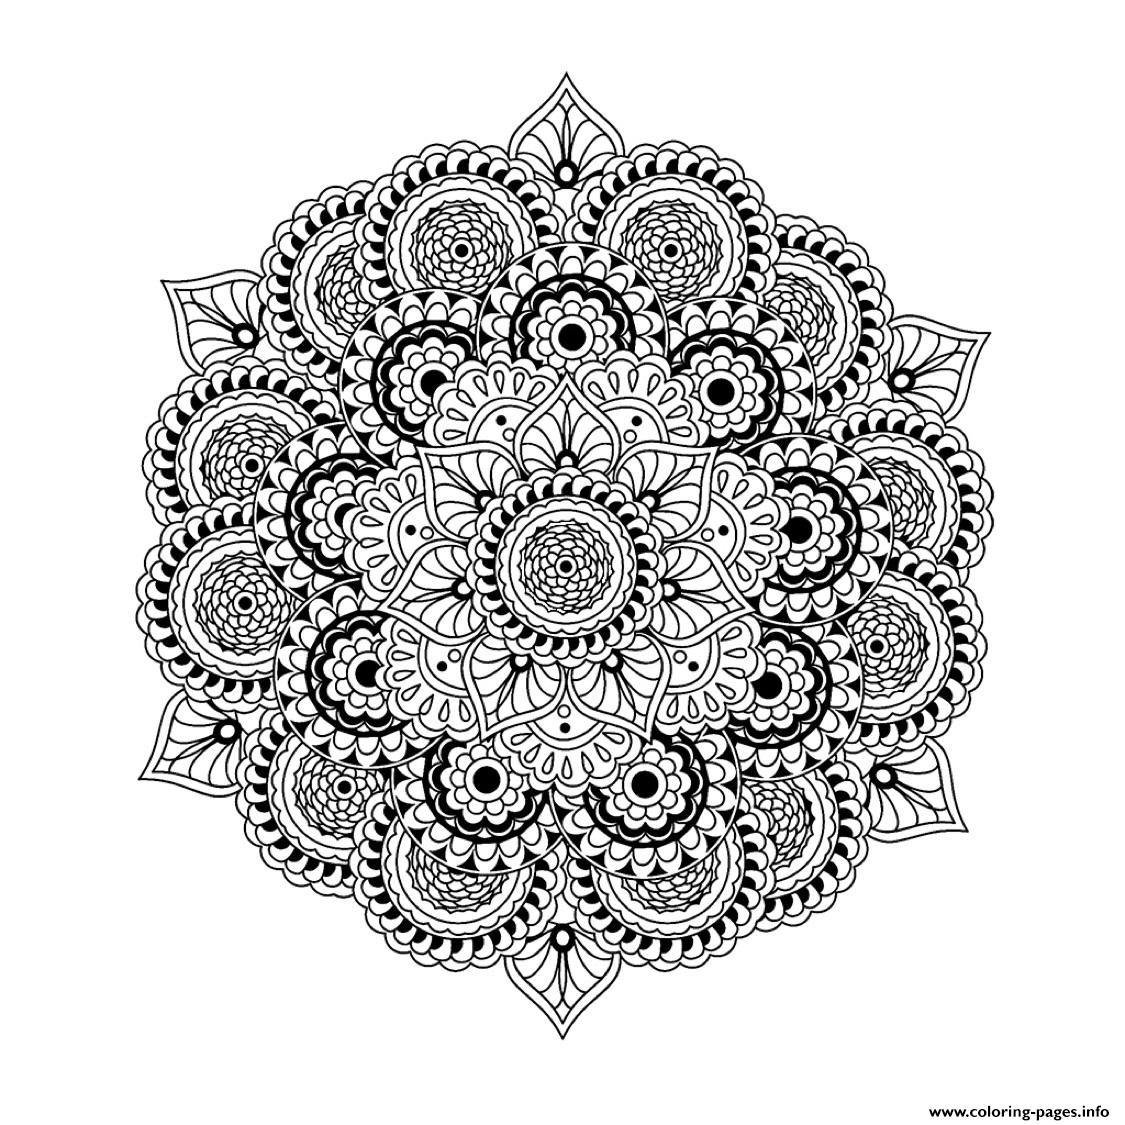 Mandala Complex Difficult To Adult Art Therapy coloring pages